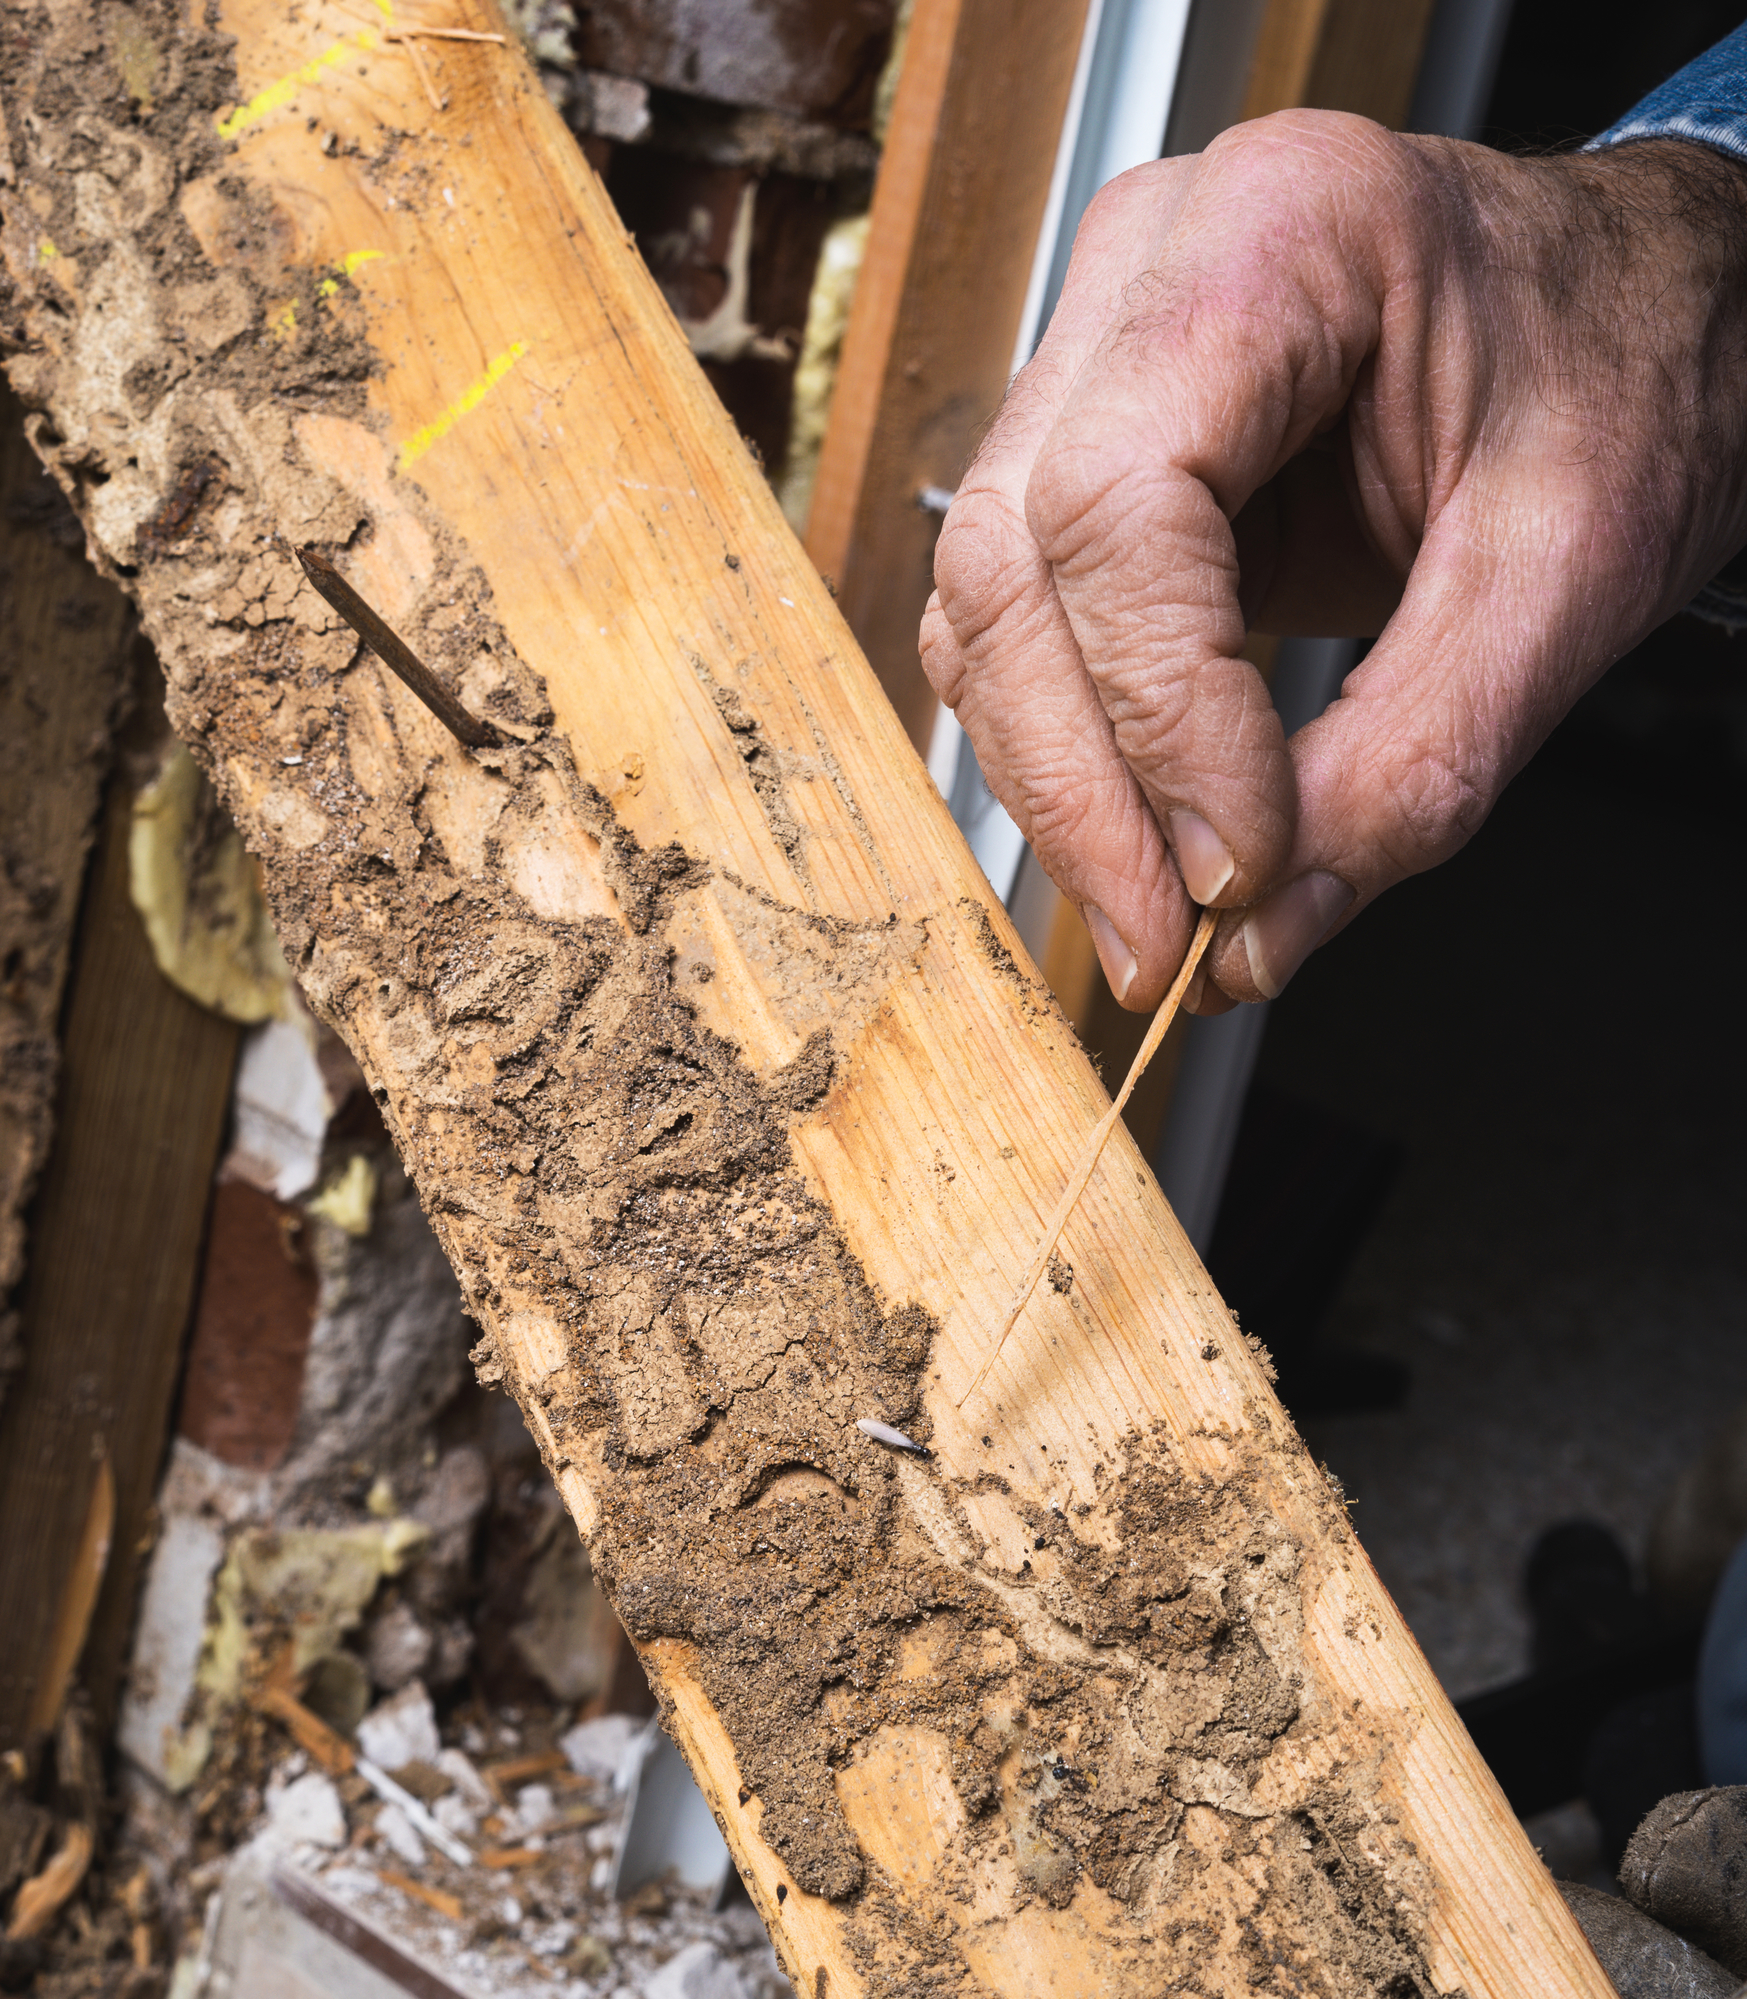 Honolulu S Termite Control Experts Explain The Difference